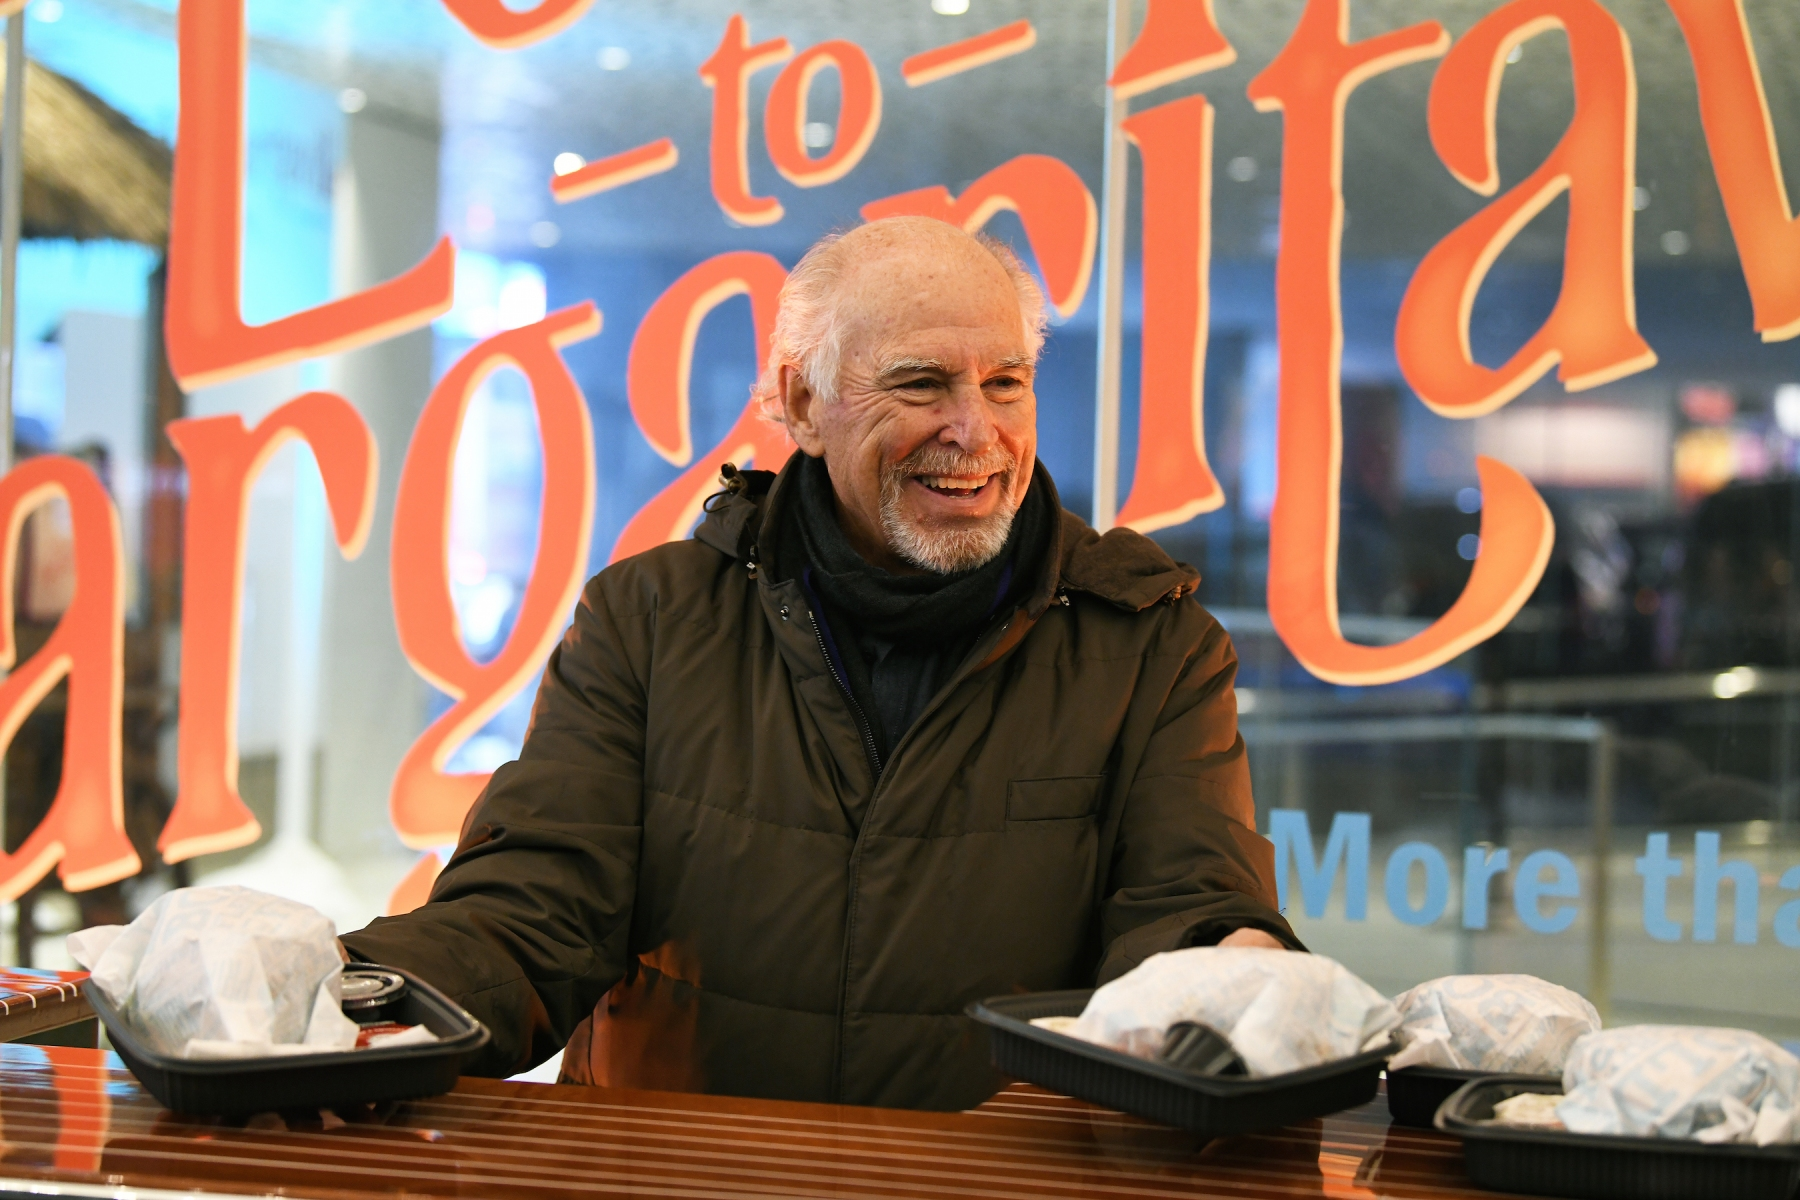 Jimmy Buffett in the Age of 'Escape to Margaritaville